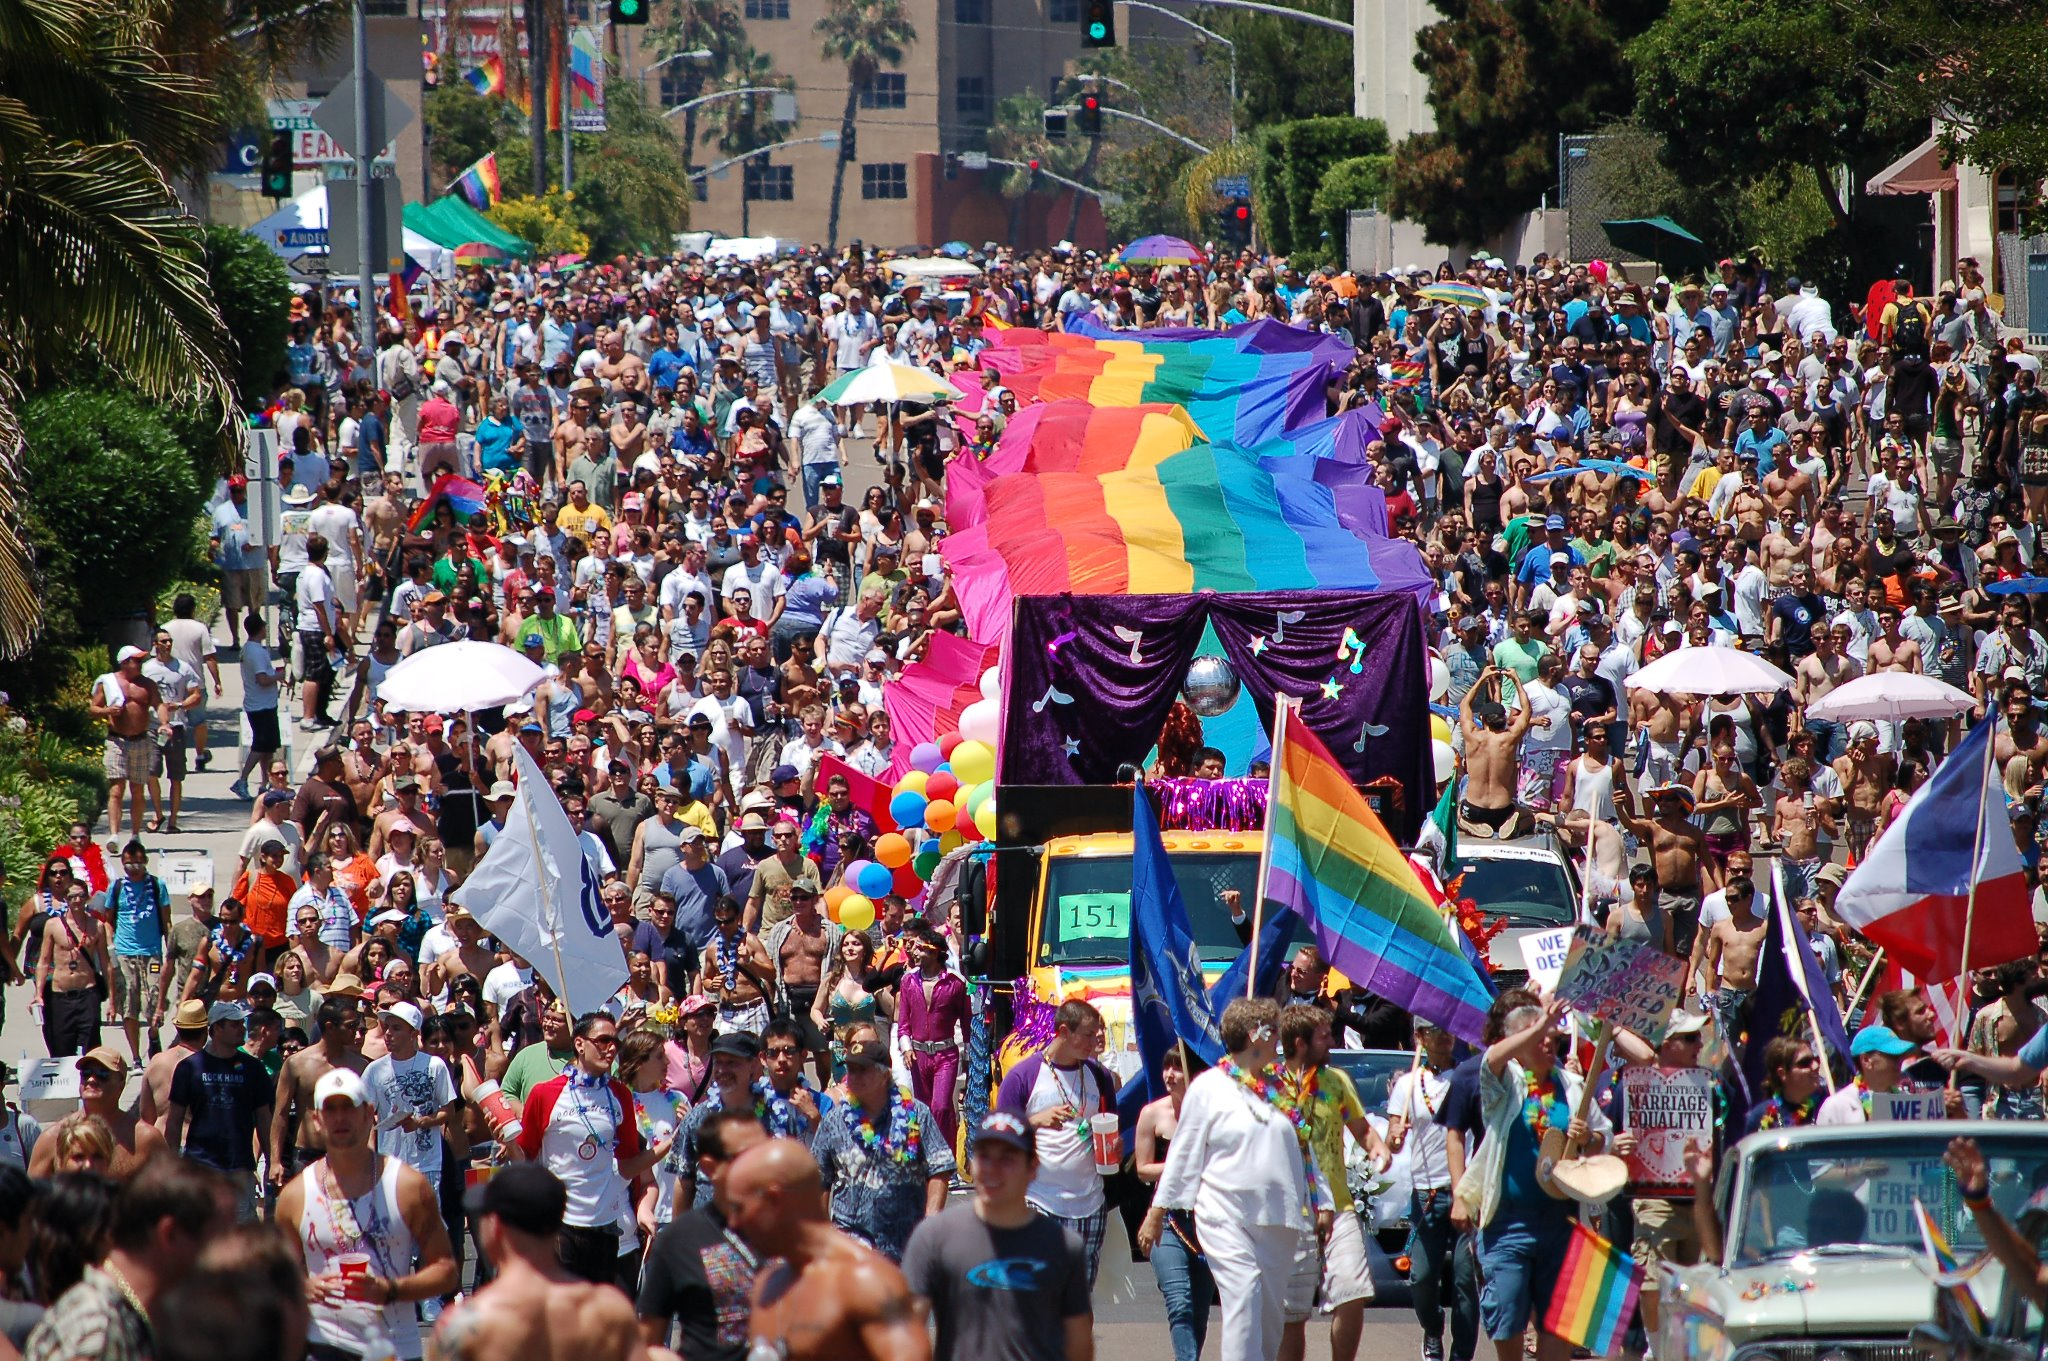 San diego lgbt pride parade and festival san diego for Things to do in nyc next weekend